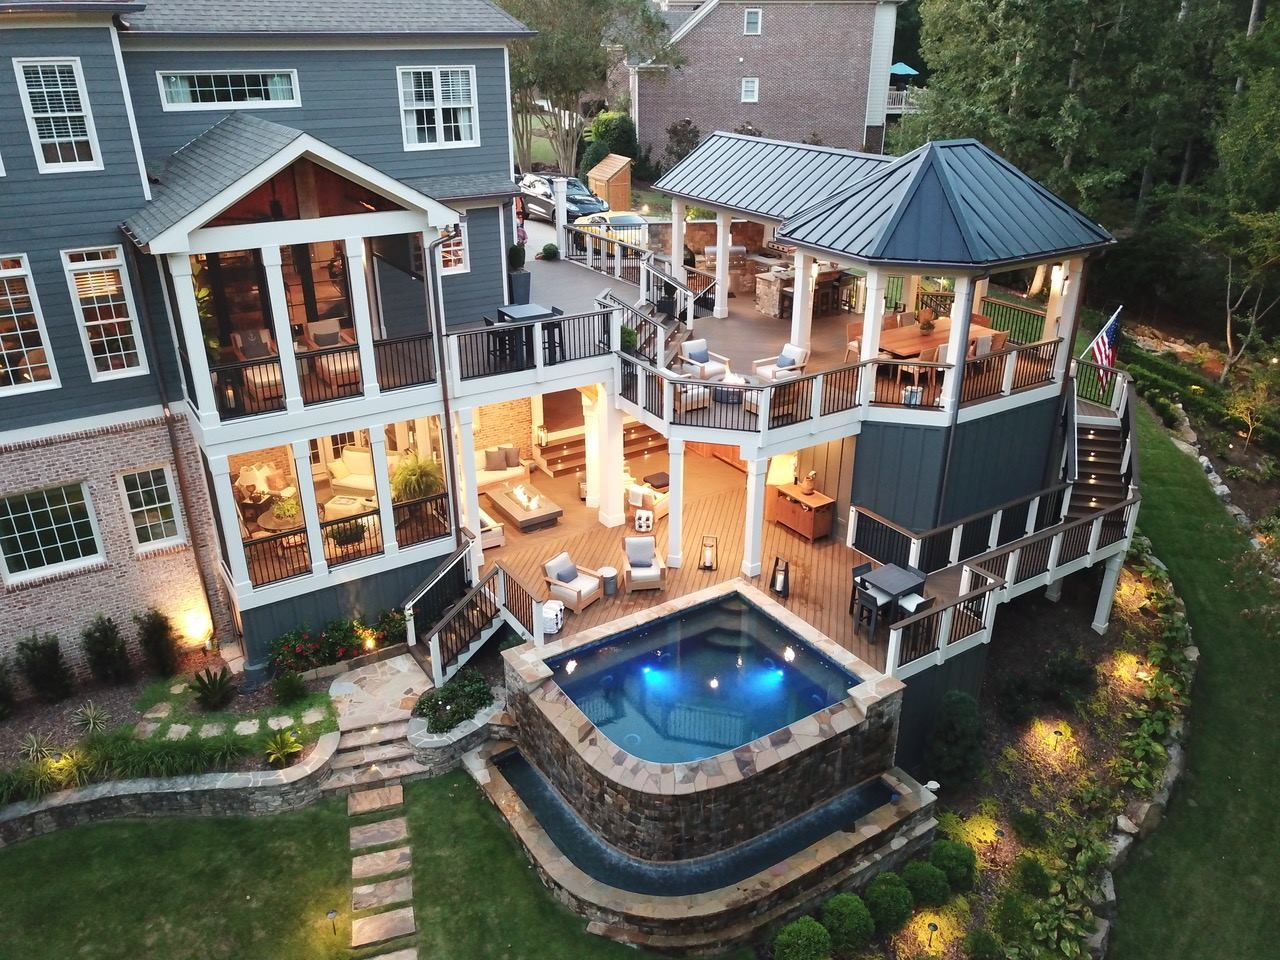 Dream Home With Two Story Enclosed Deck And Pool Dream House